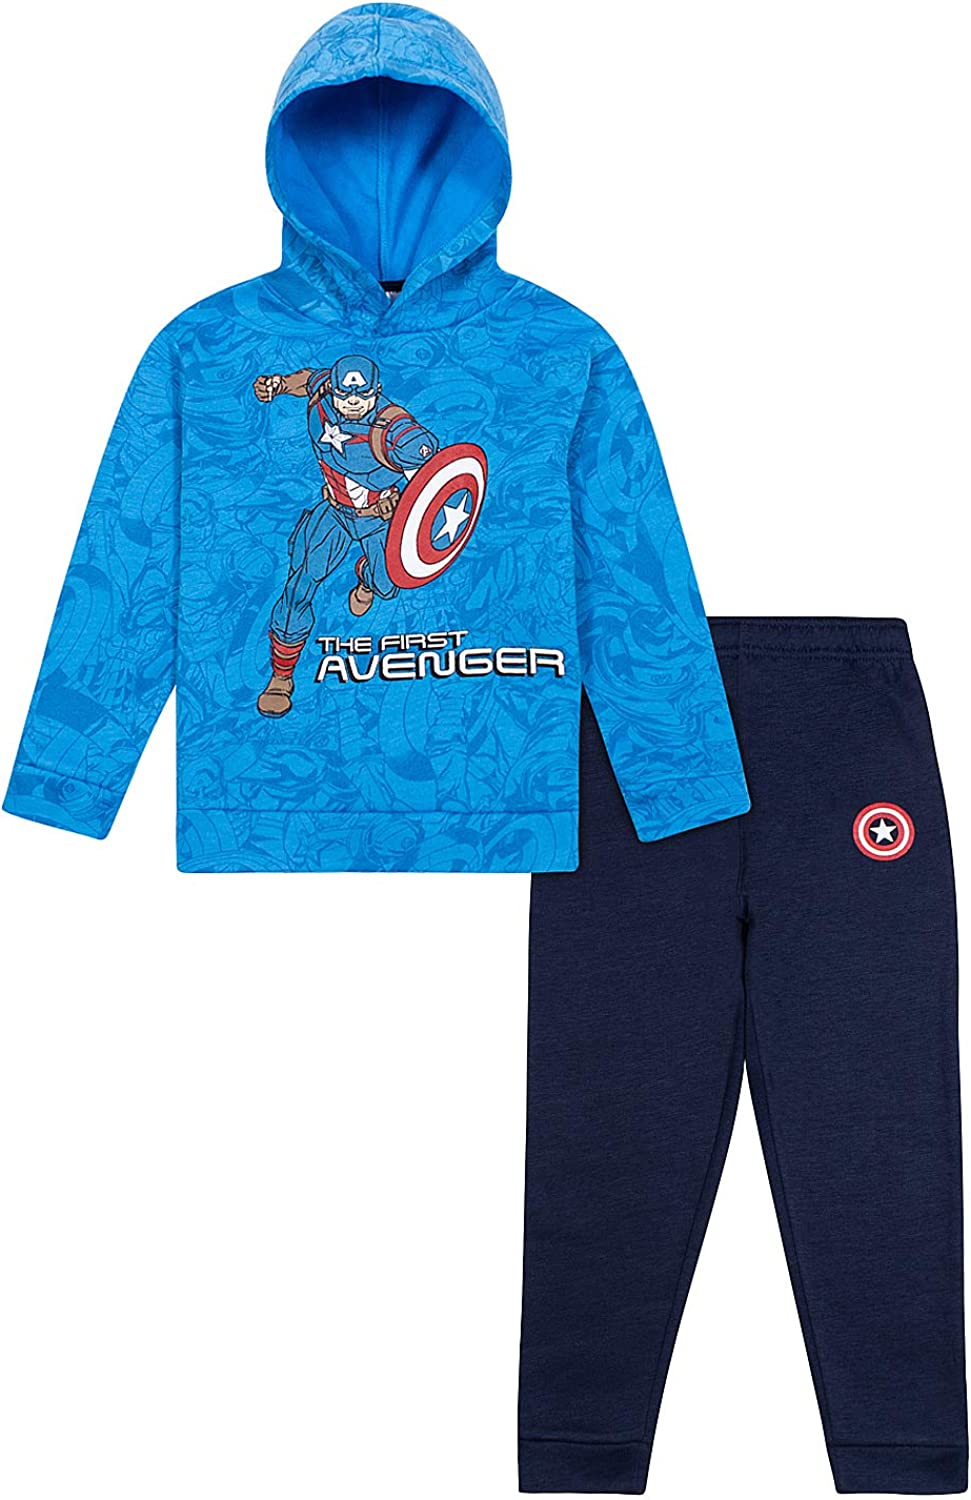 Avengers Boys 3 Piece Activewear Bundle Set - Long Sleeve...